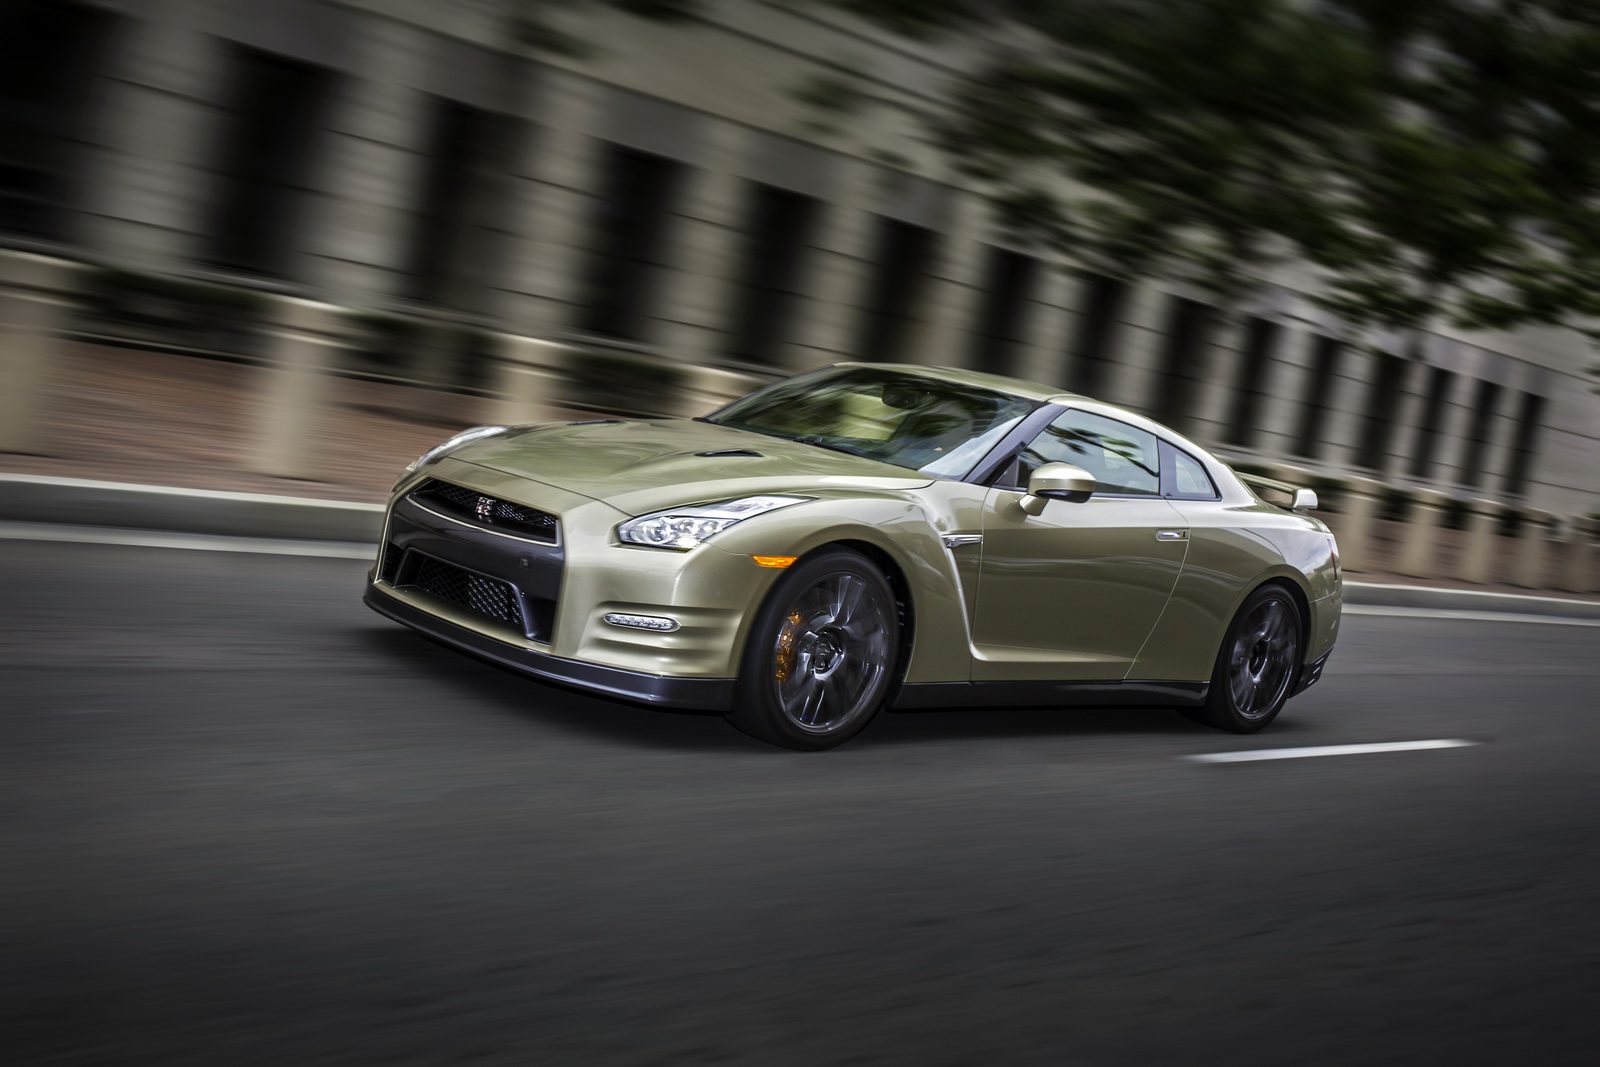 2016 nissan gt r 45th anniversary gold edition car. Black Bedroom Furniture Sets. Home Design Ideas